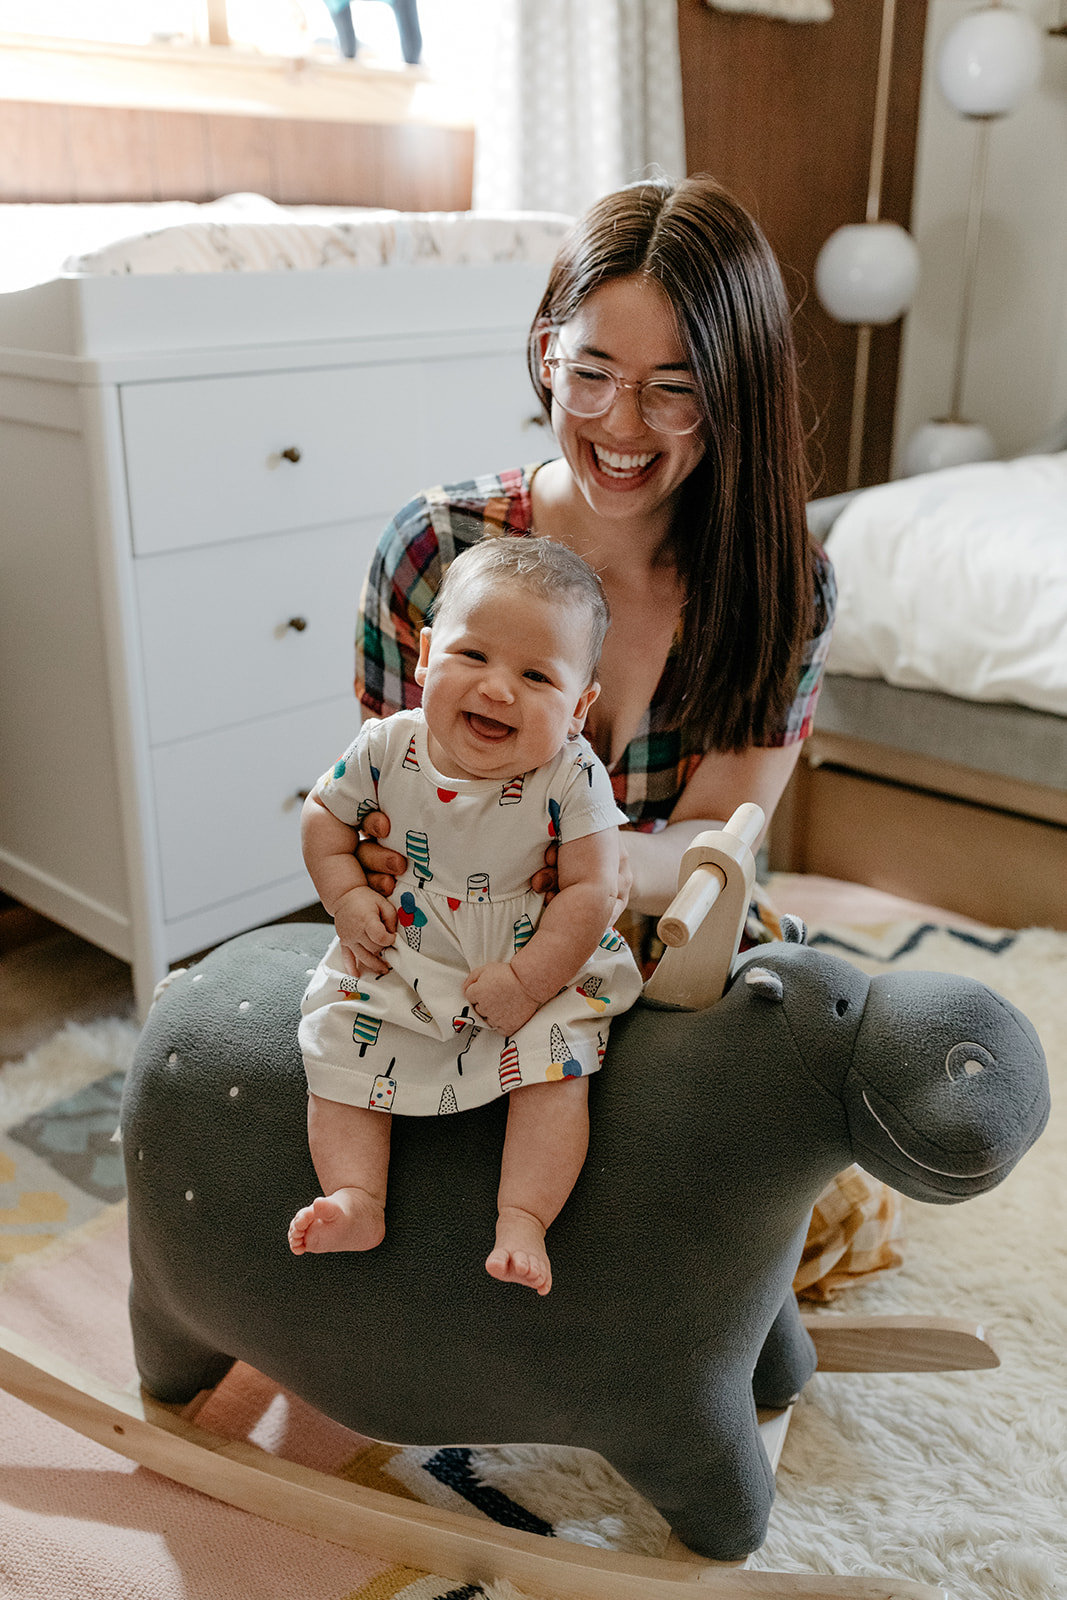 6-28-19-molly-yeh-crate-and-kids-189.jpg